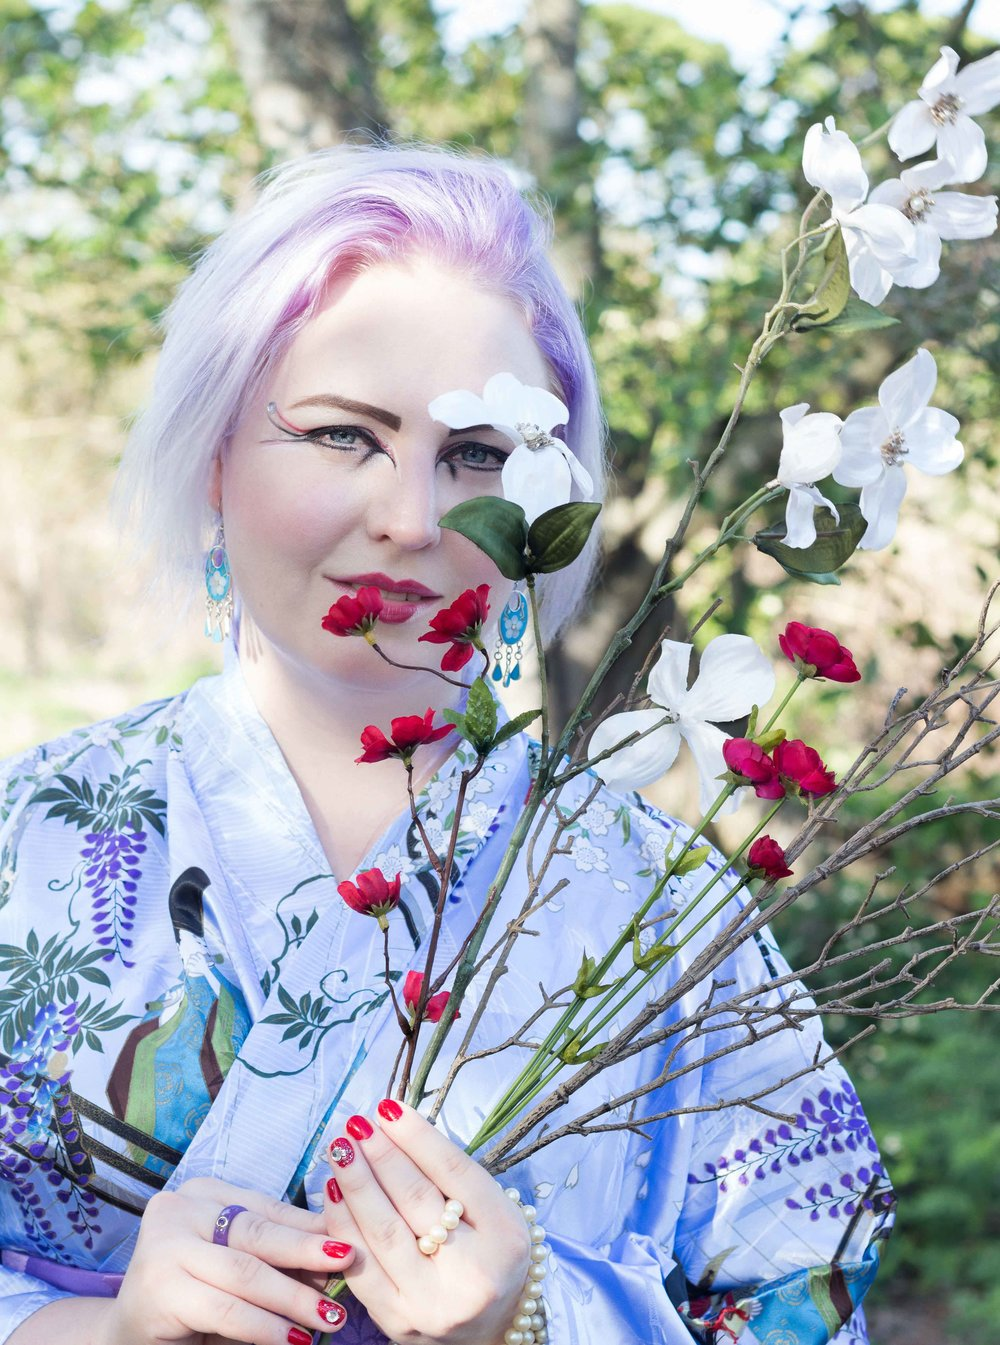 girl with lavender hair in blue kimono holding white and red flowers